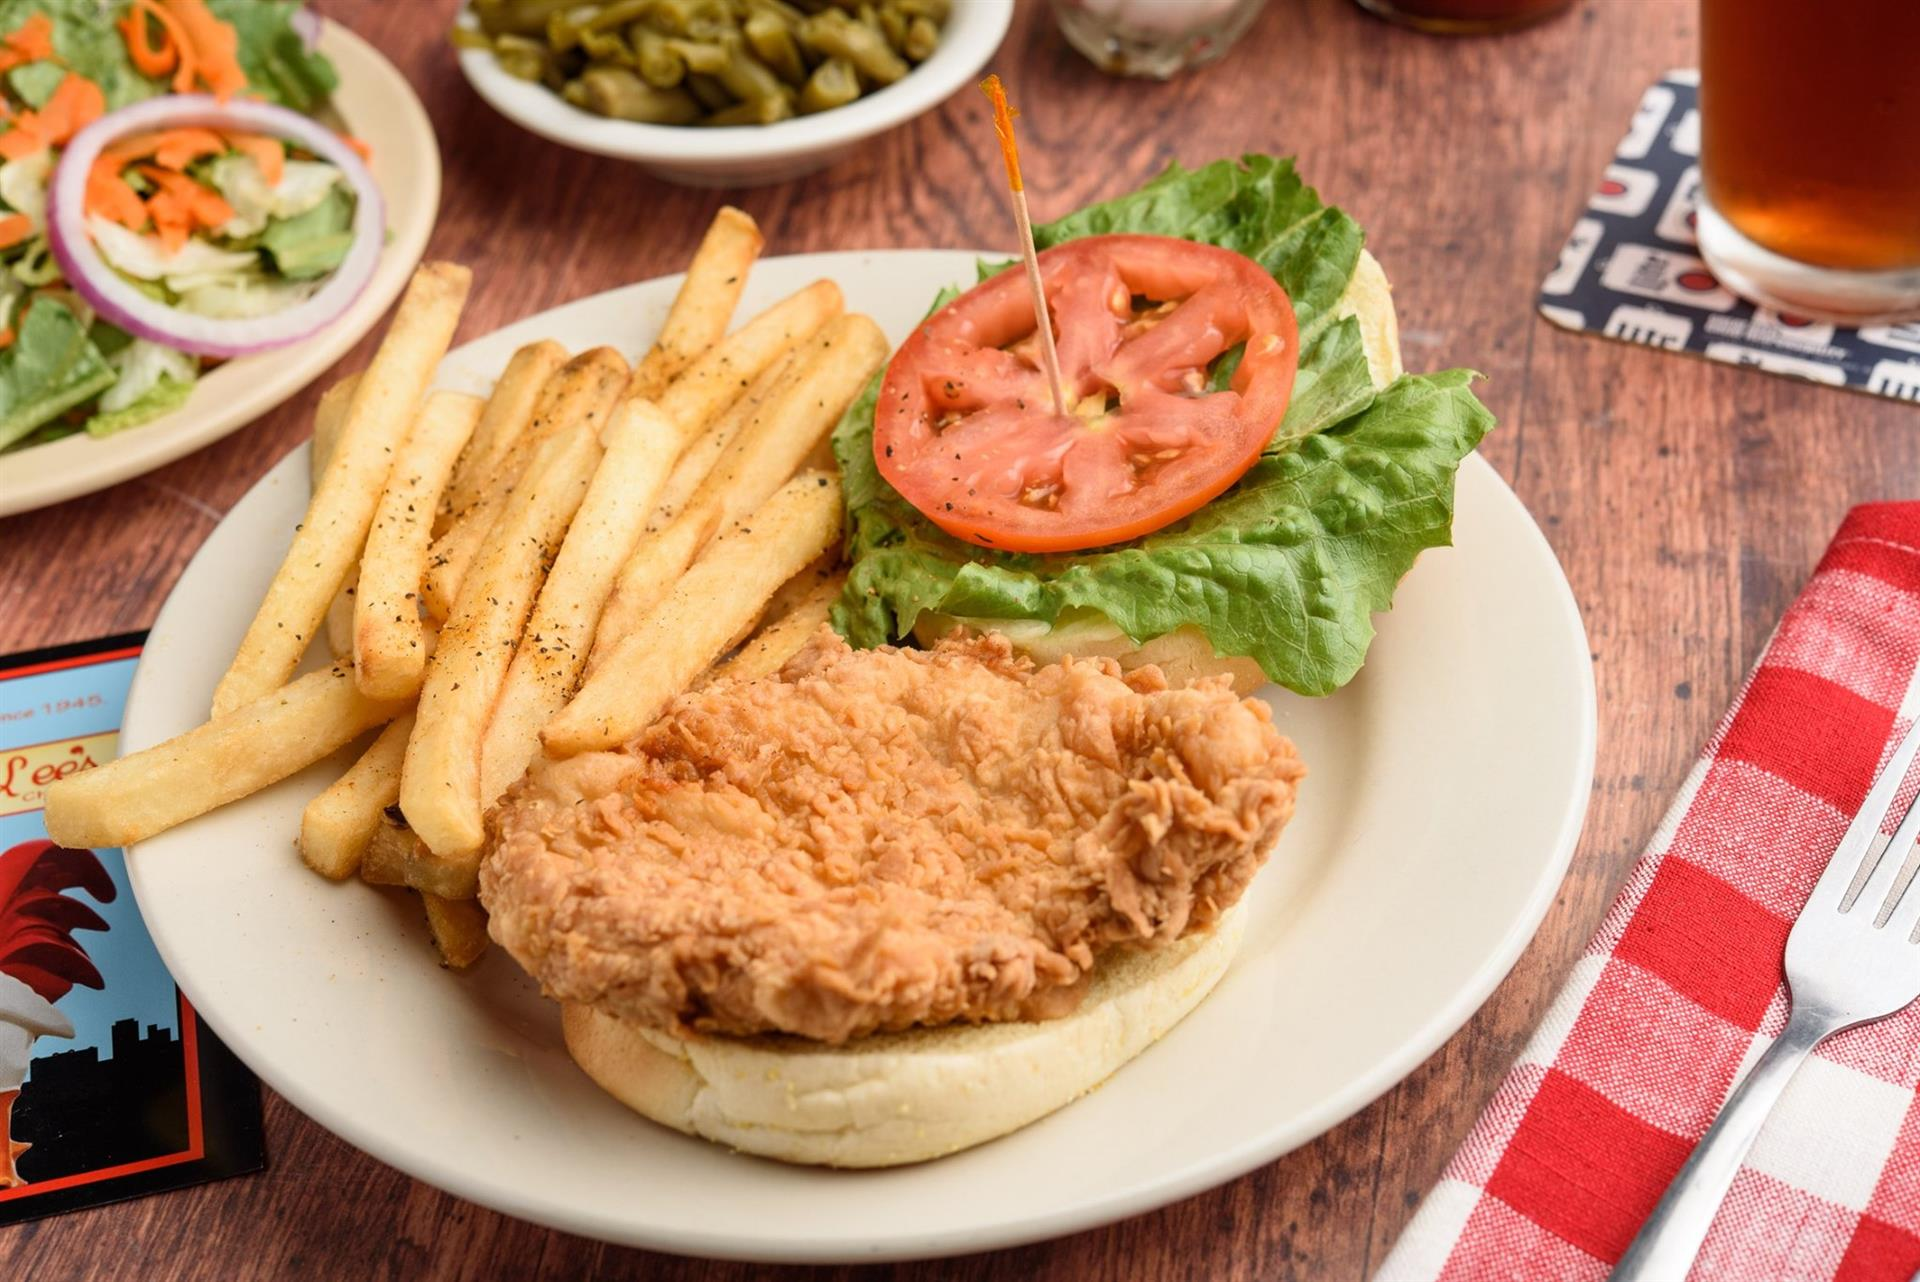 fried chicken sandwich with lettuce, tomato and a side of fries